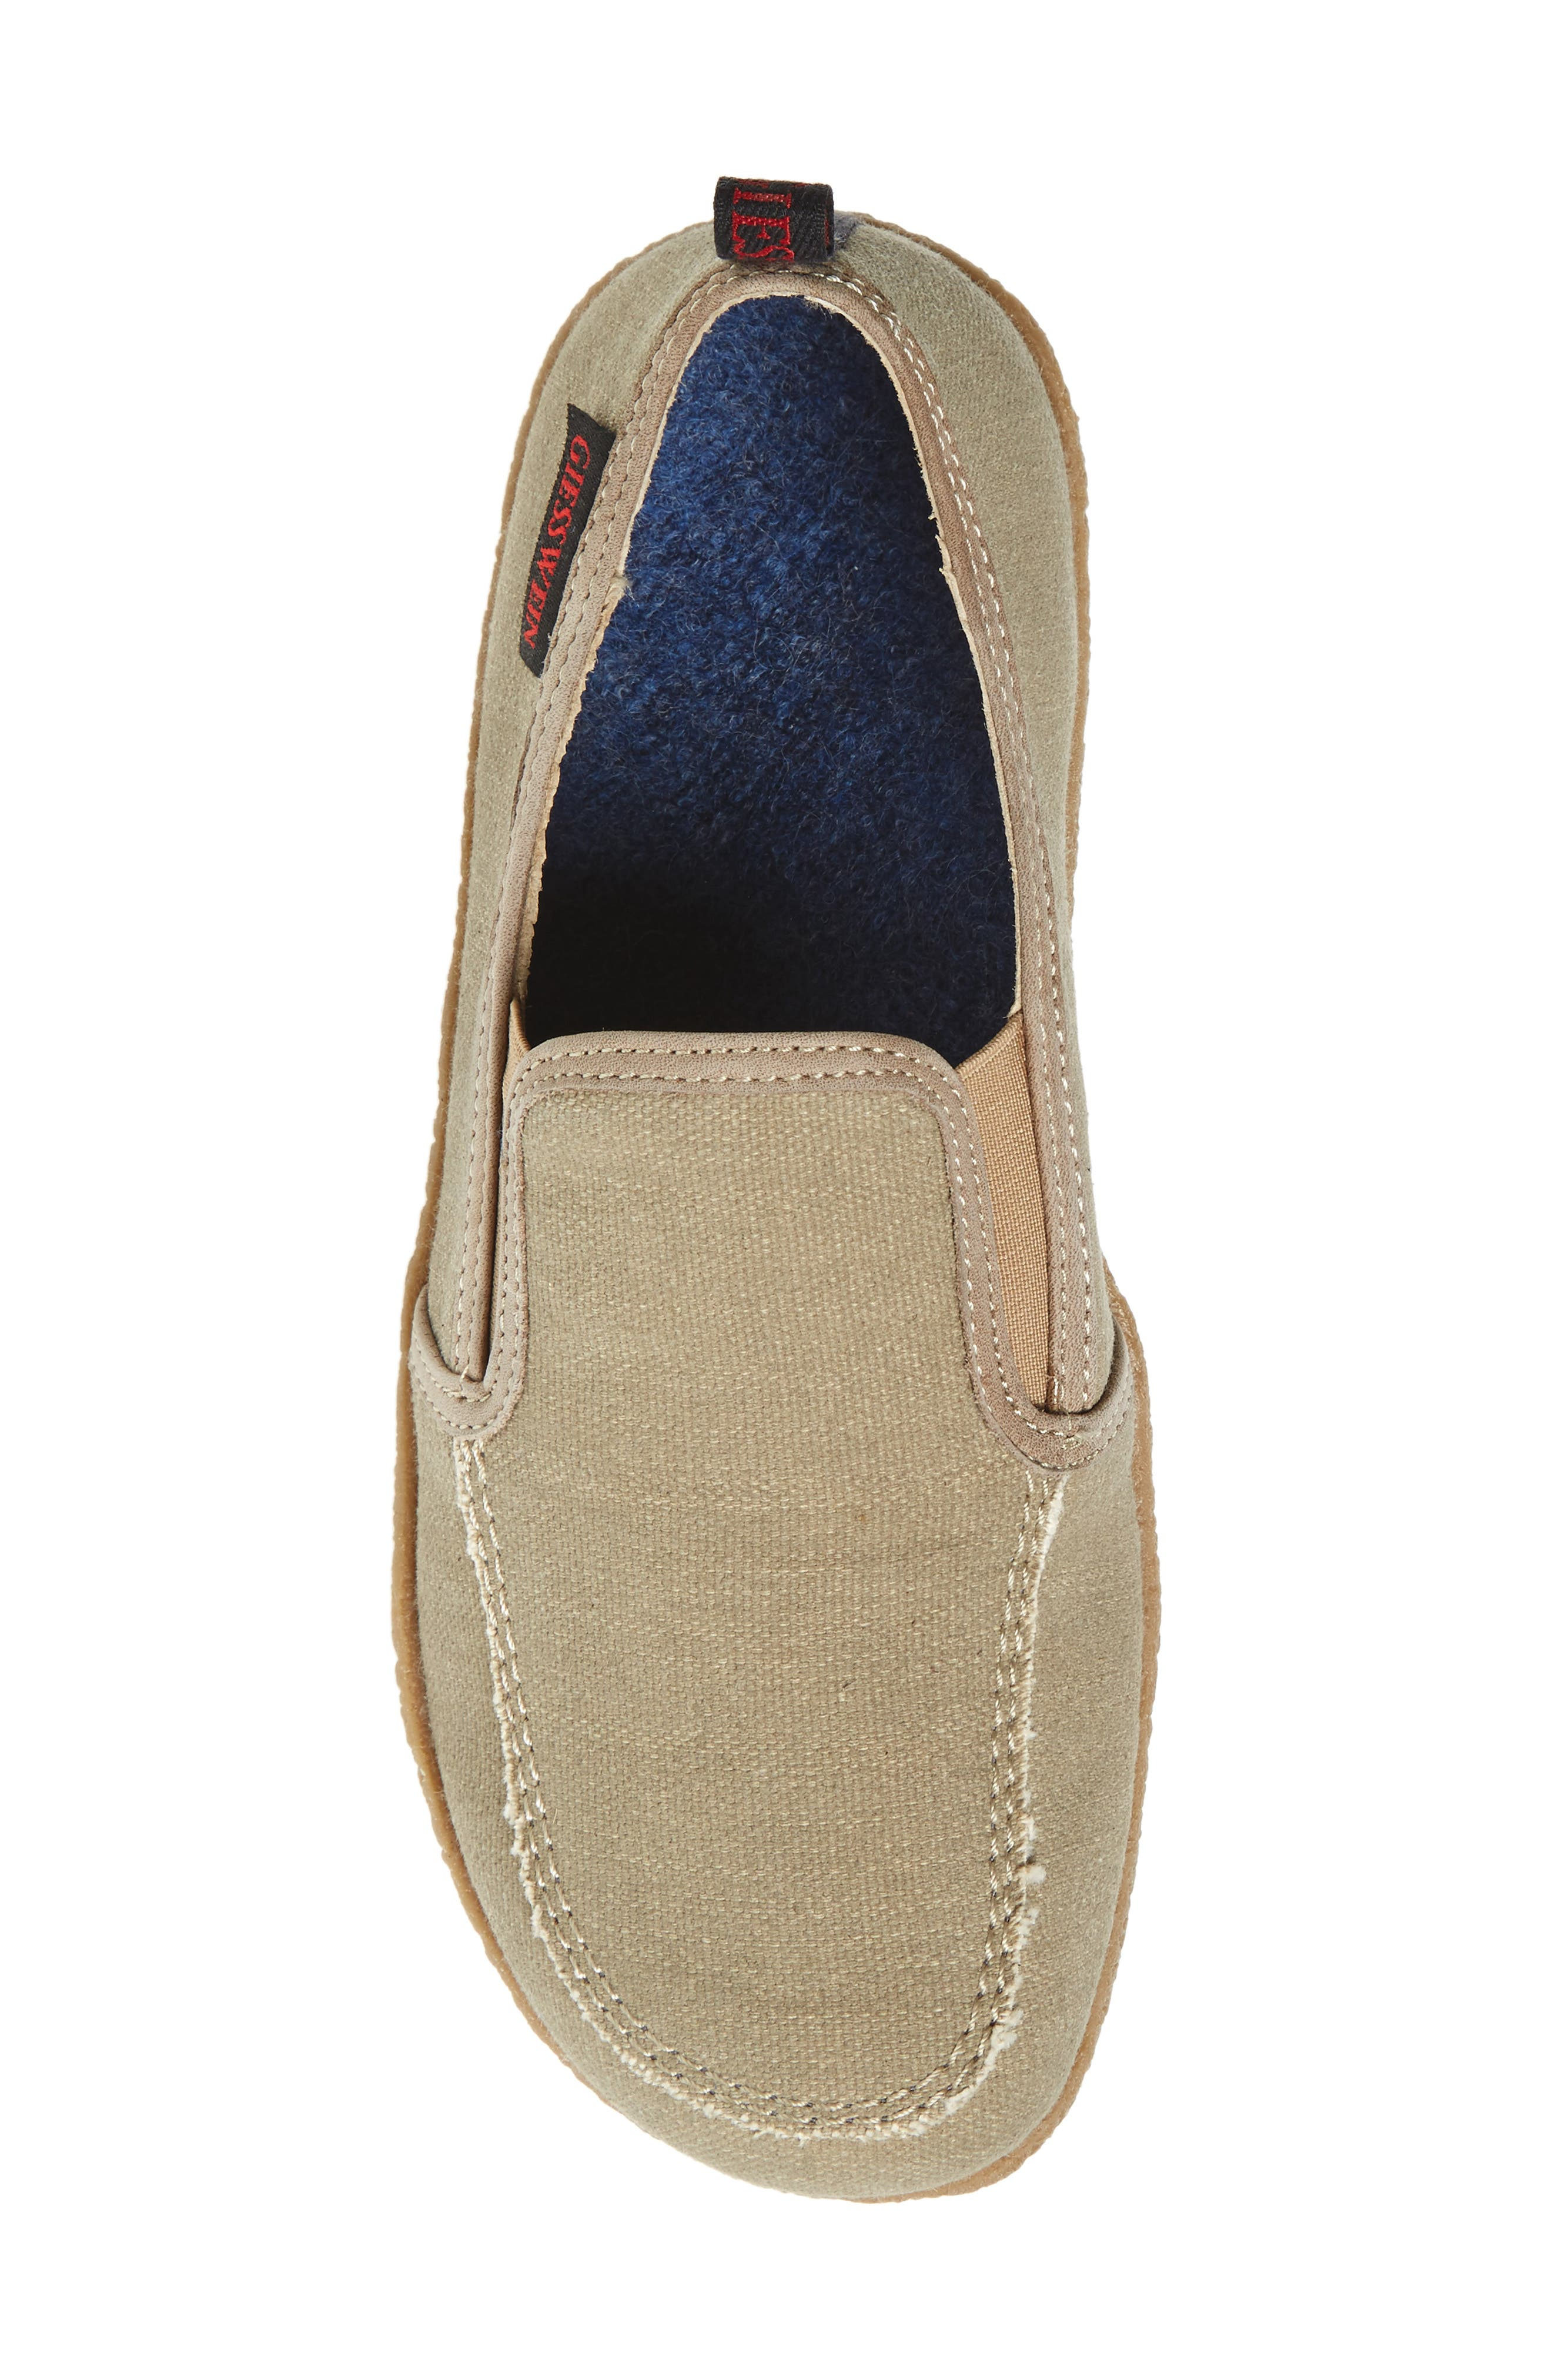 Reith Loafer,                             Alternate thumbnail 5, color,                             Sesame Leather